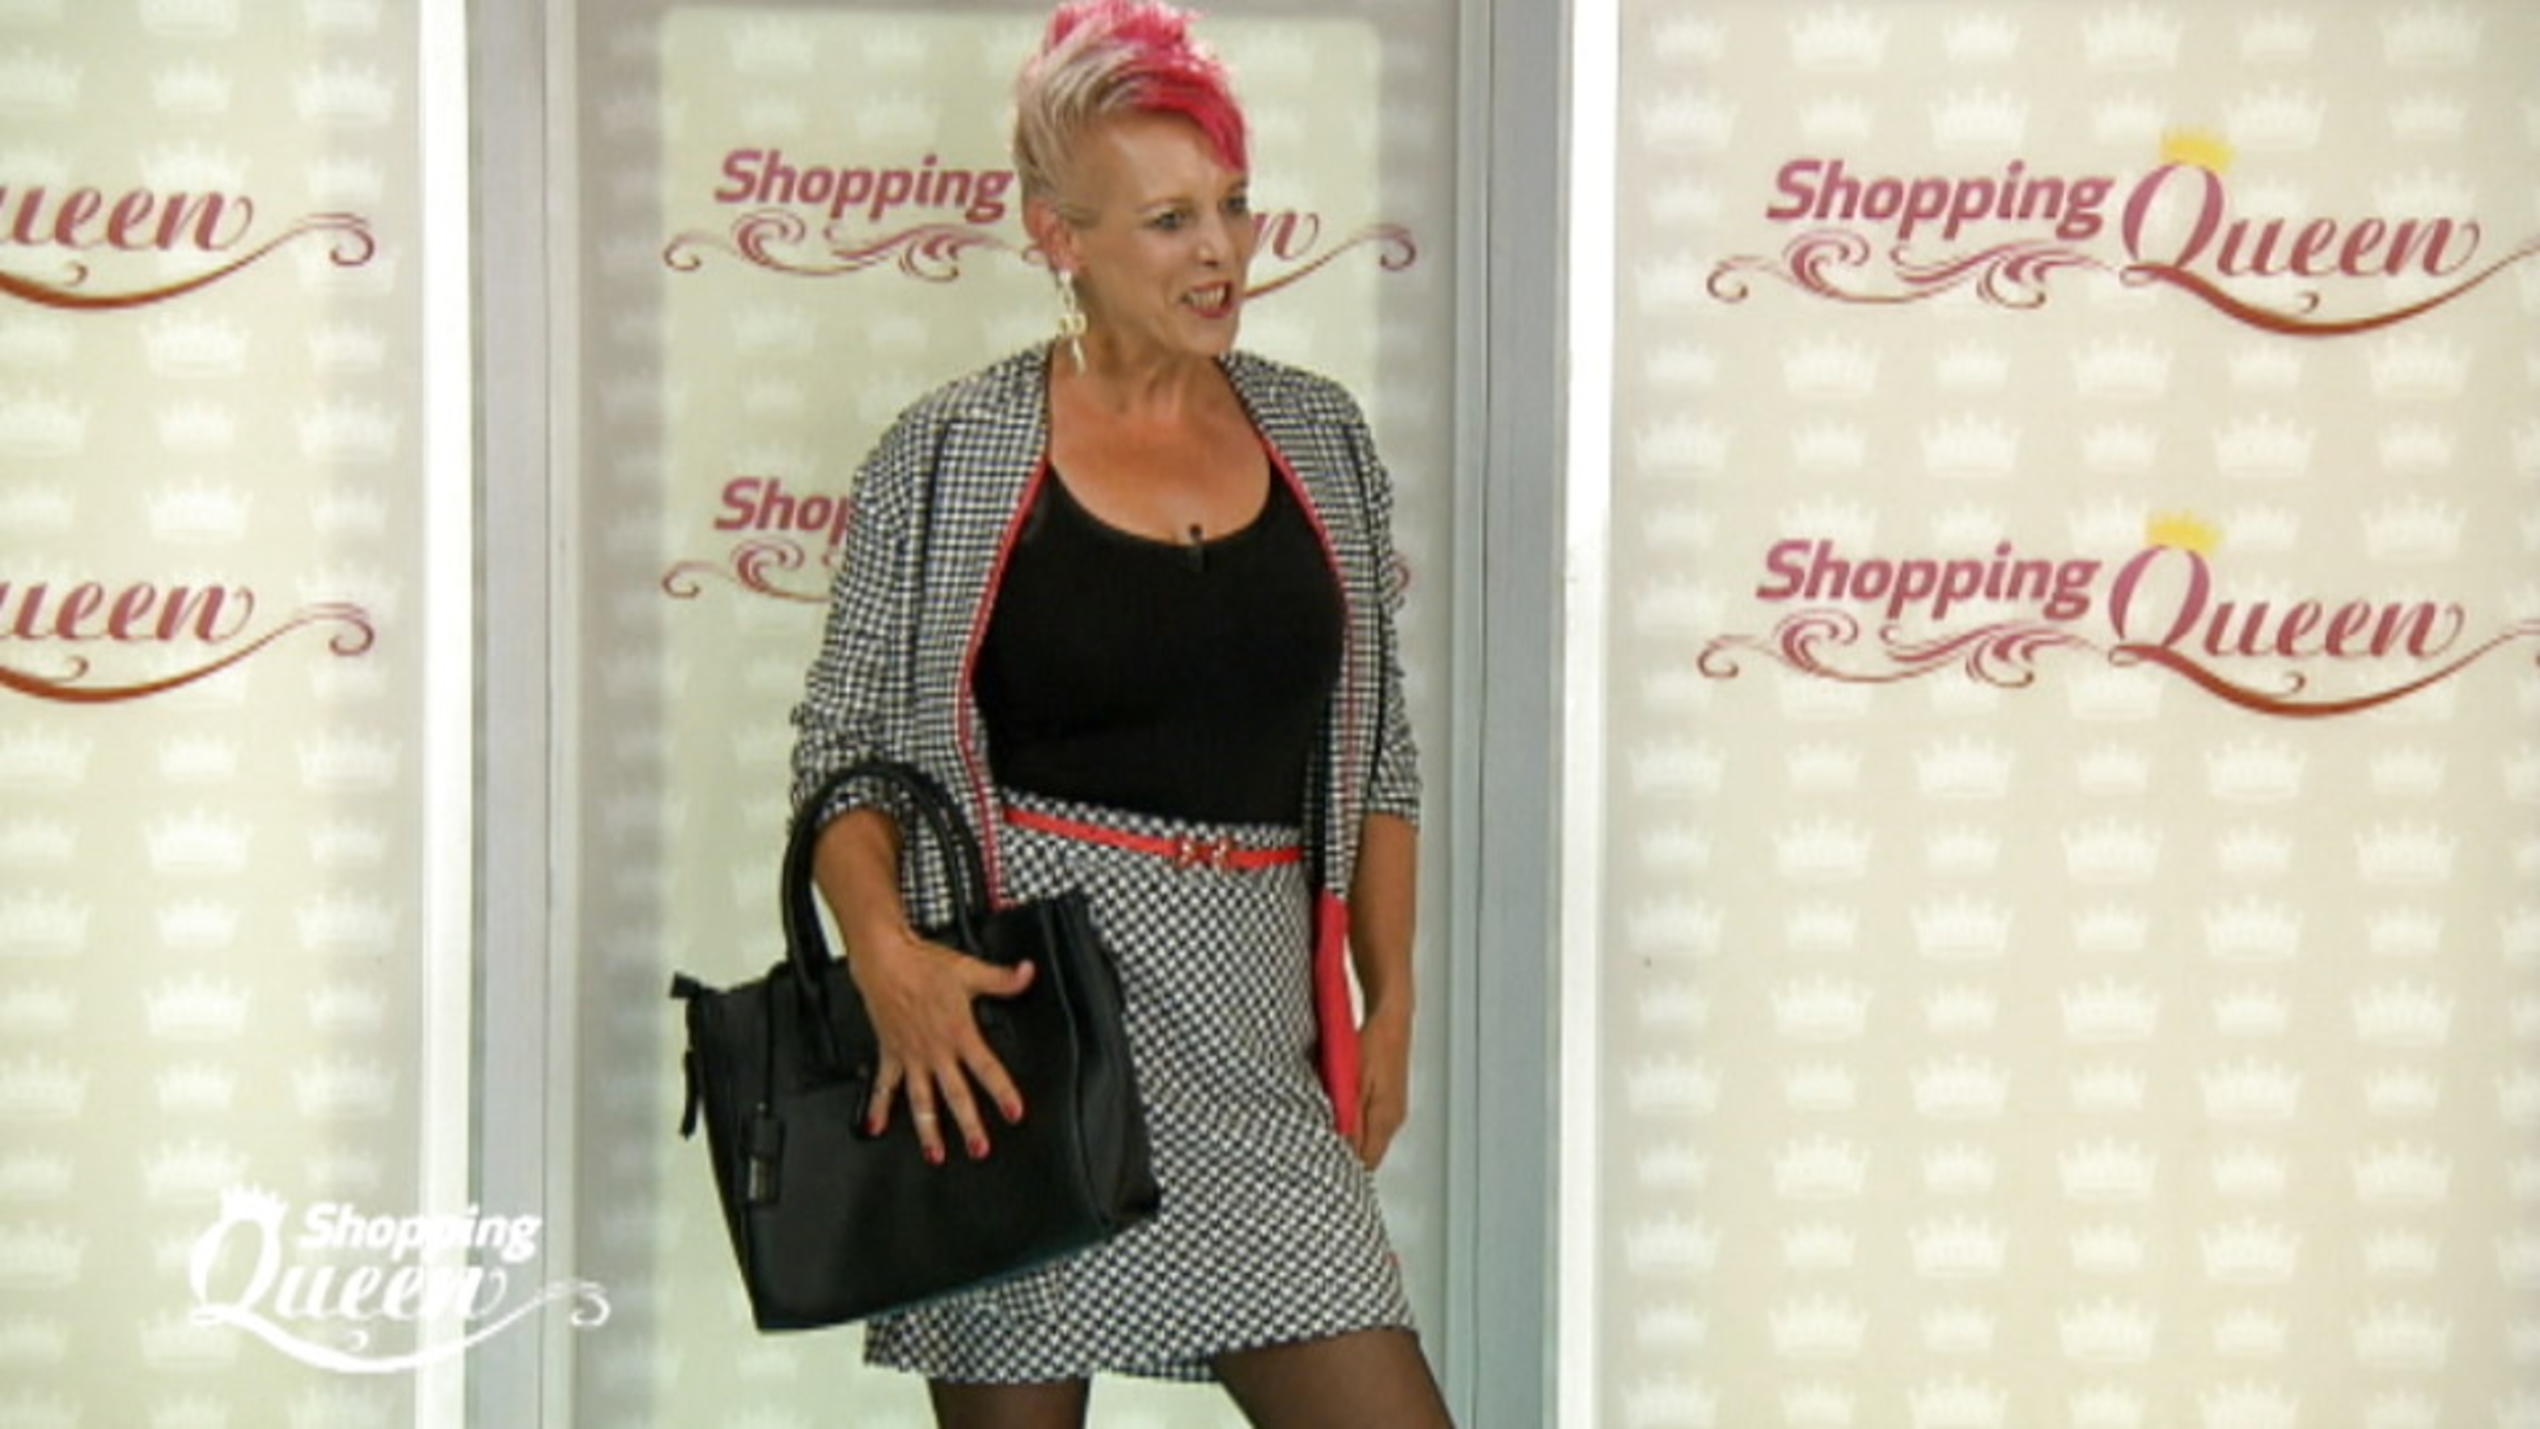 Steffi Shopping Queen